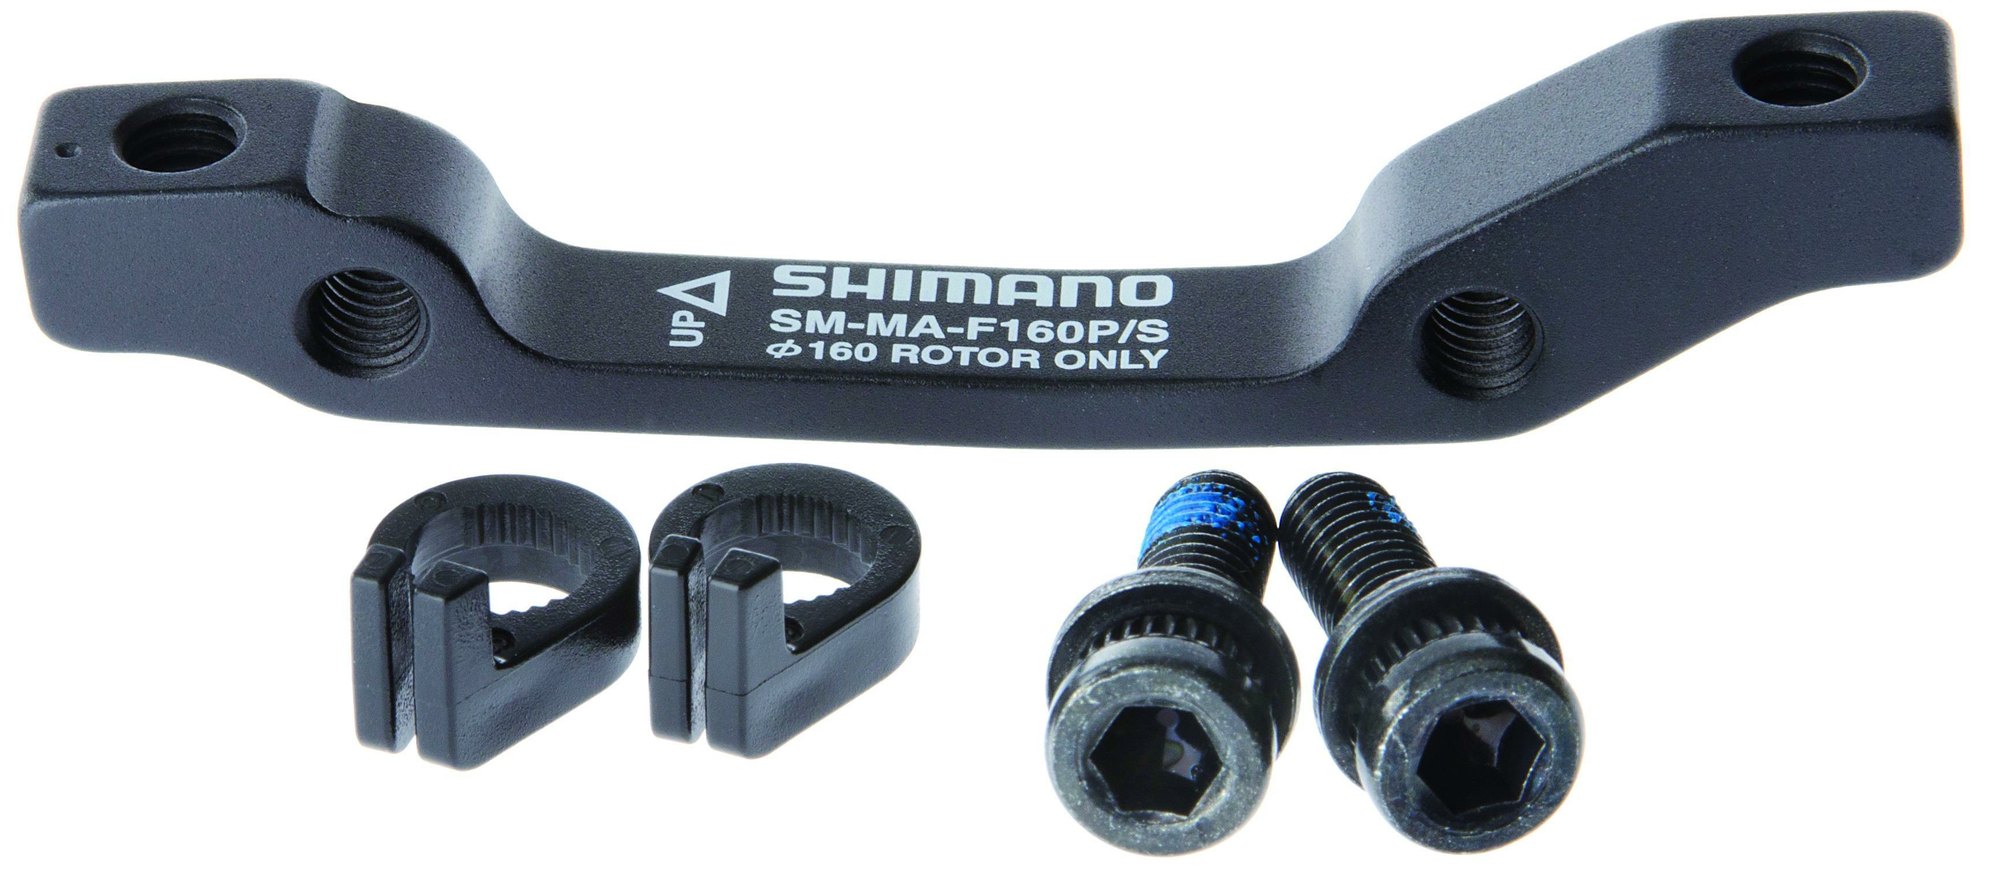 Shimano Adapter Scheibenbremse VR IS-PM 160 mm SM-MA-F160PSA